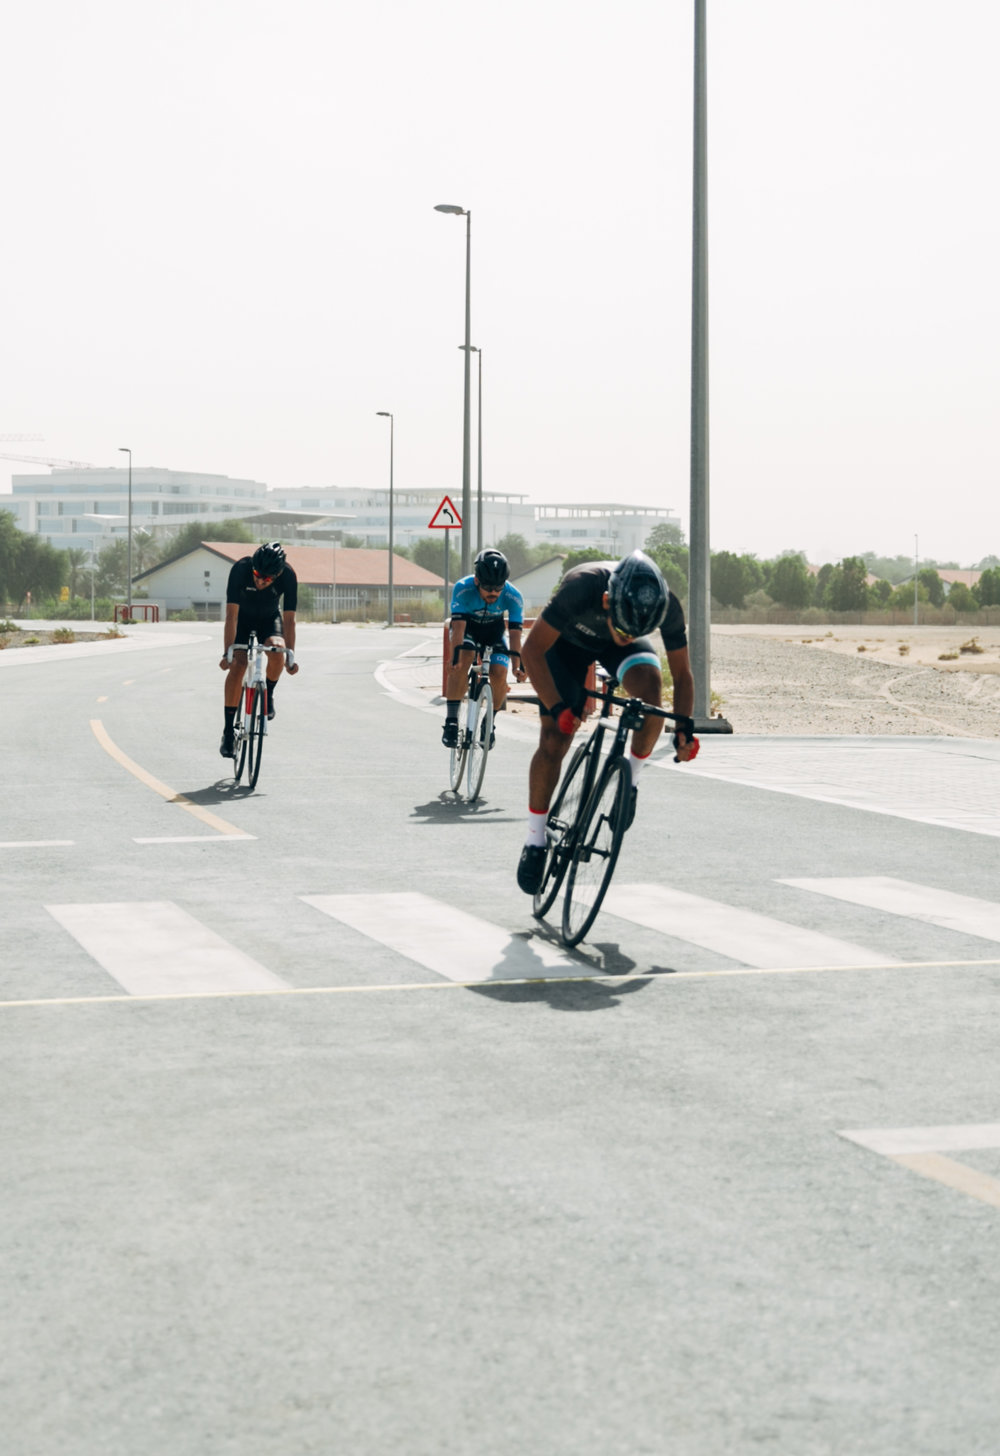 Sprint finish Kingdom Crit Dubai